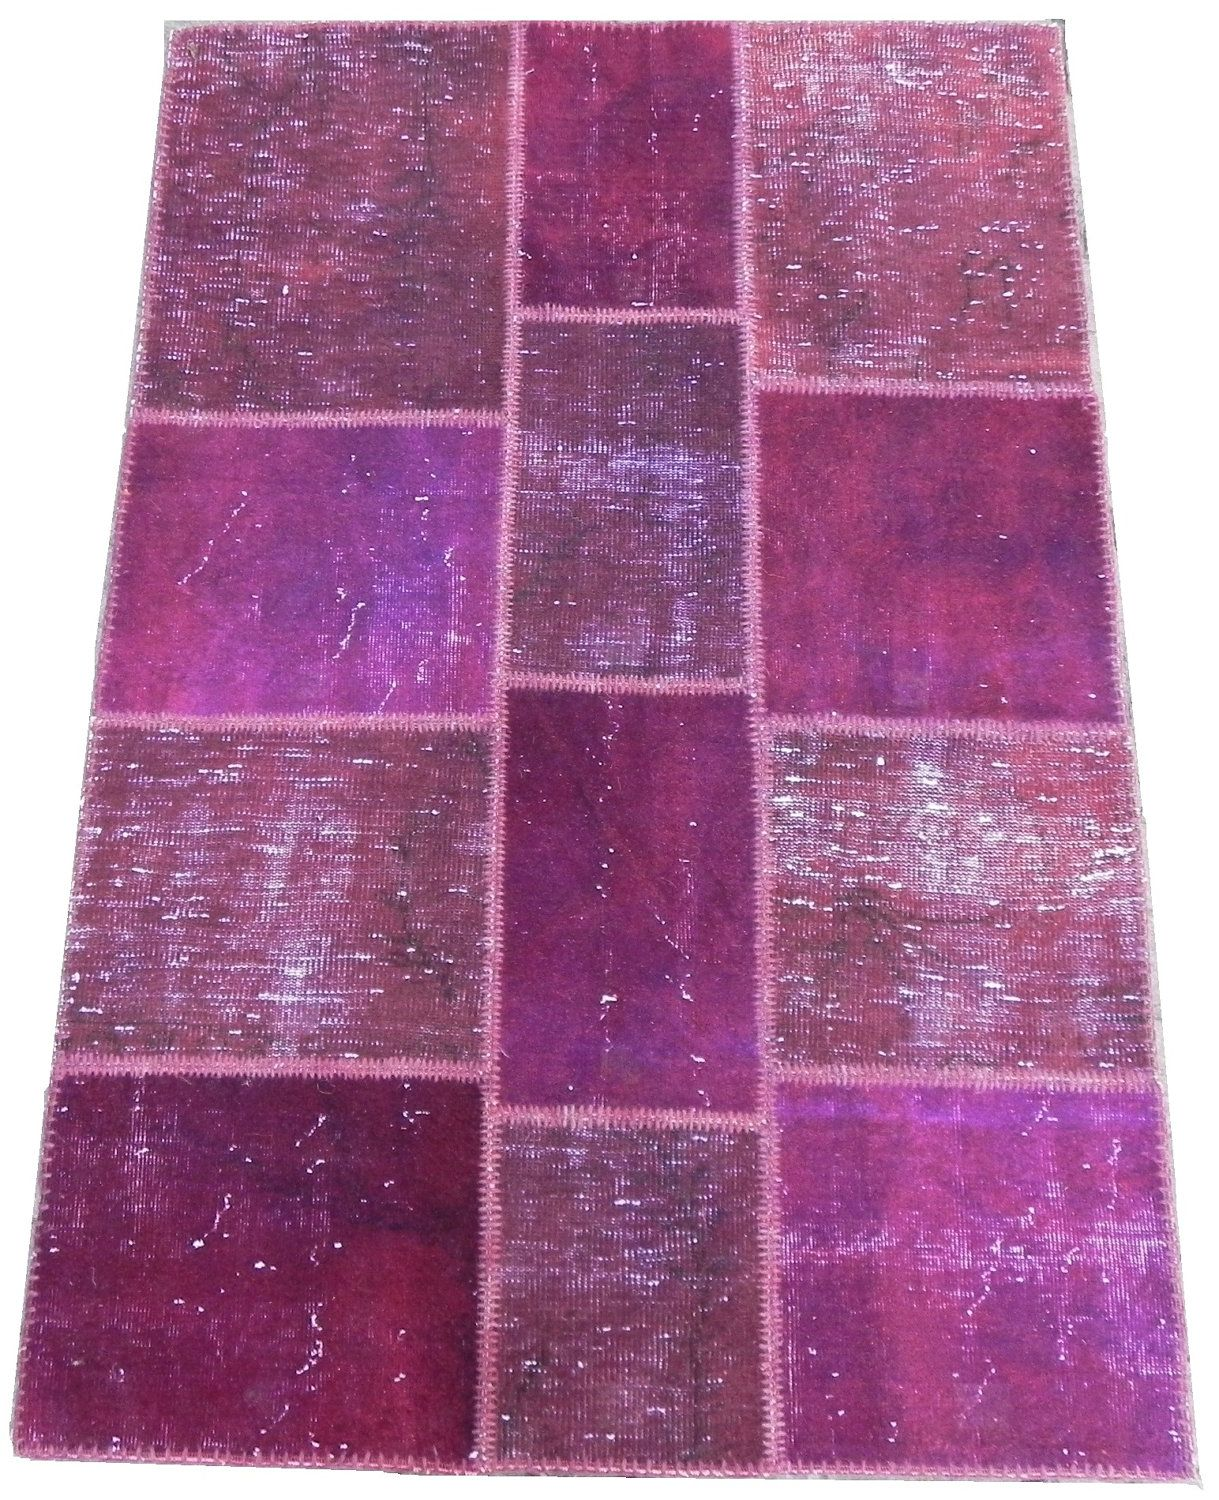 Patchwork Rug handmade from Over-dyed Distressed Vintage Turkish Carpets : Purple, Plum, Violet Colors, 4x6 ft. $395.00, via Etsy.